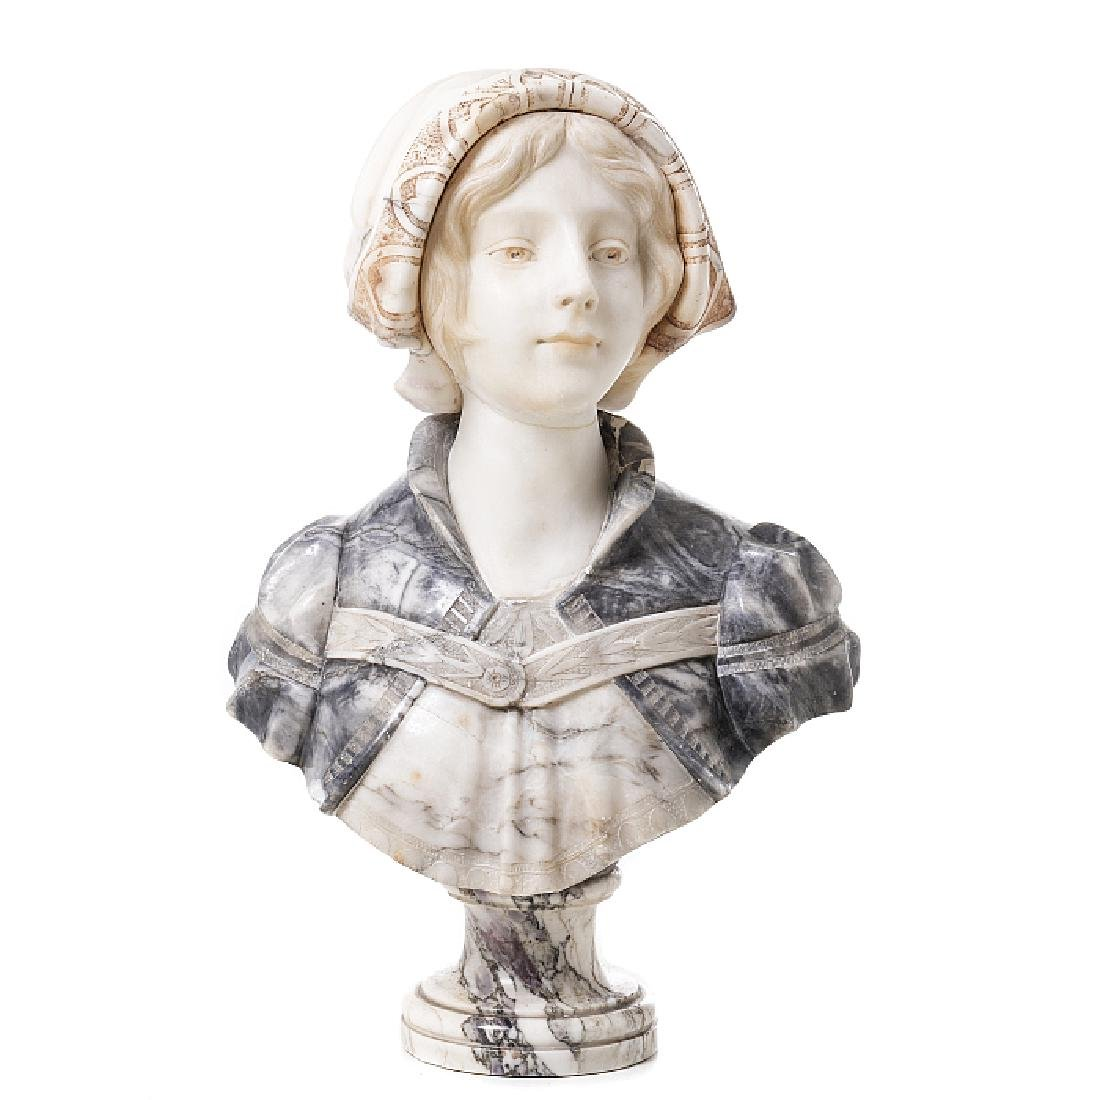 Female bust in marble